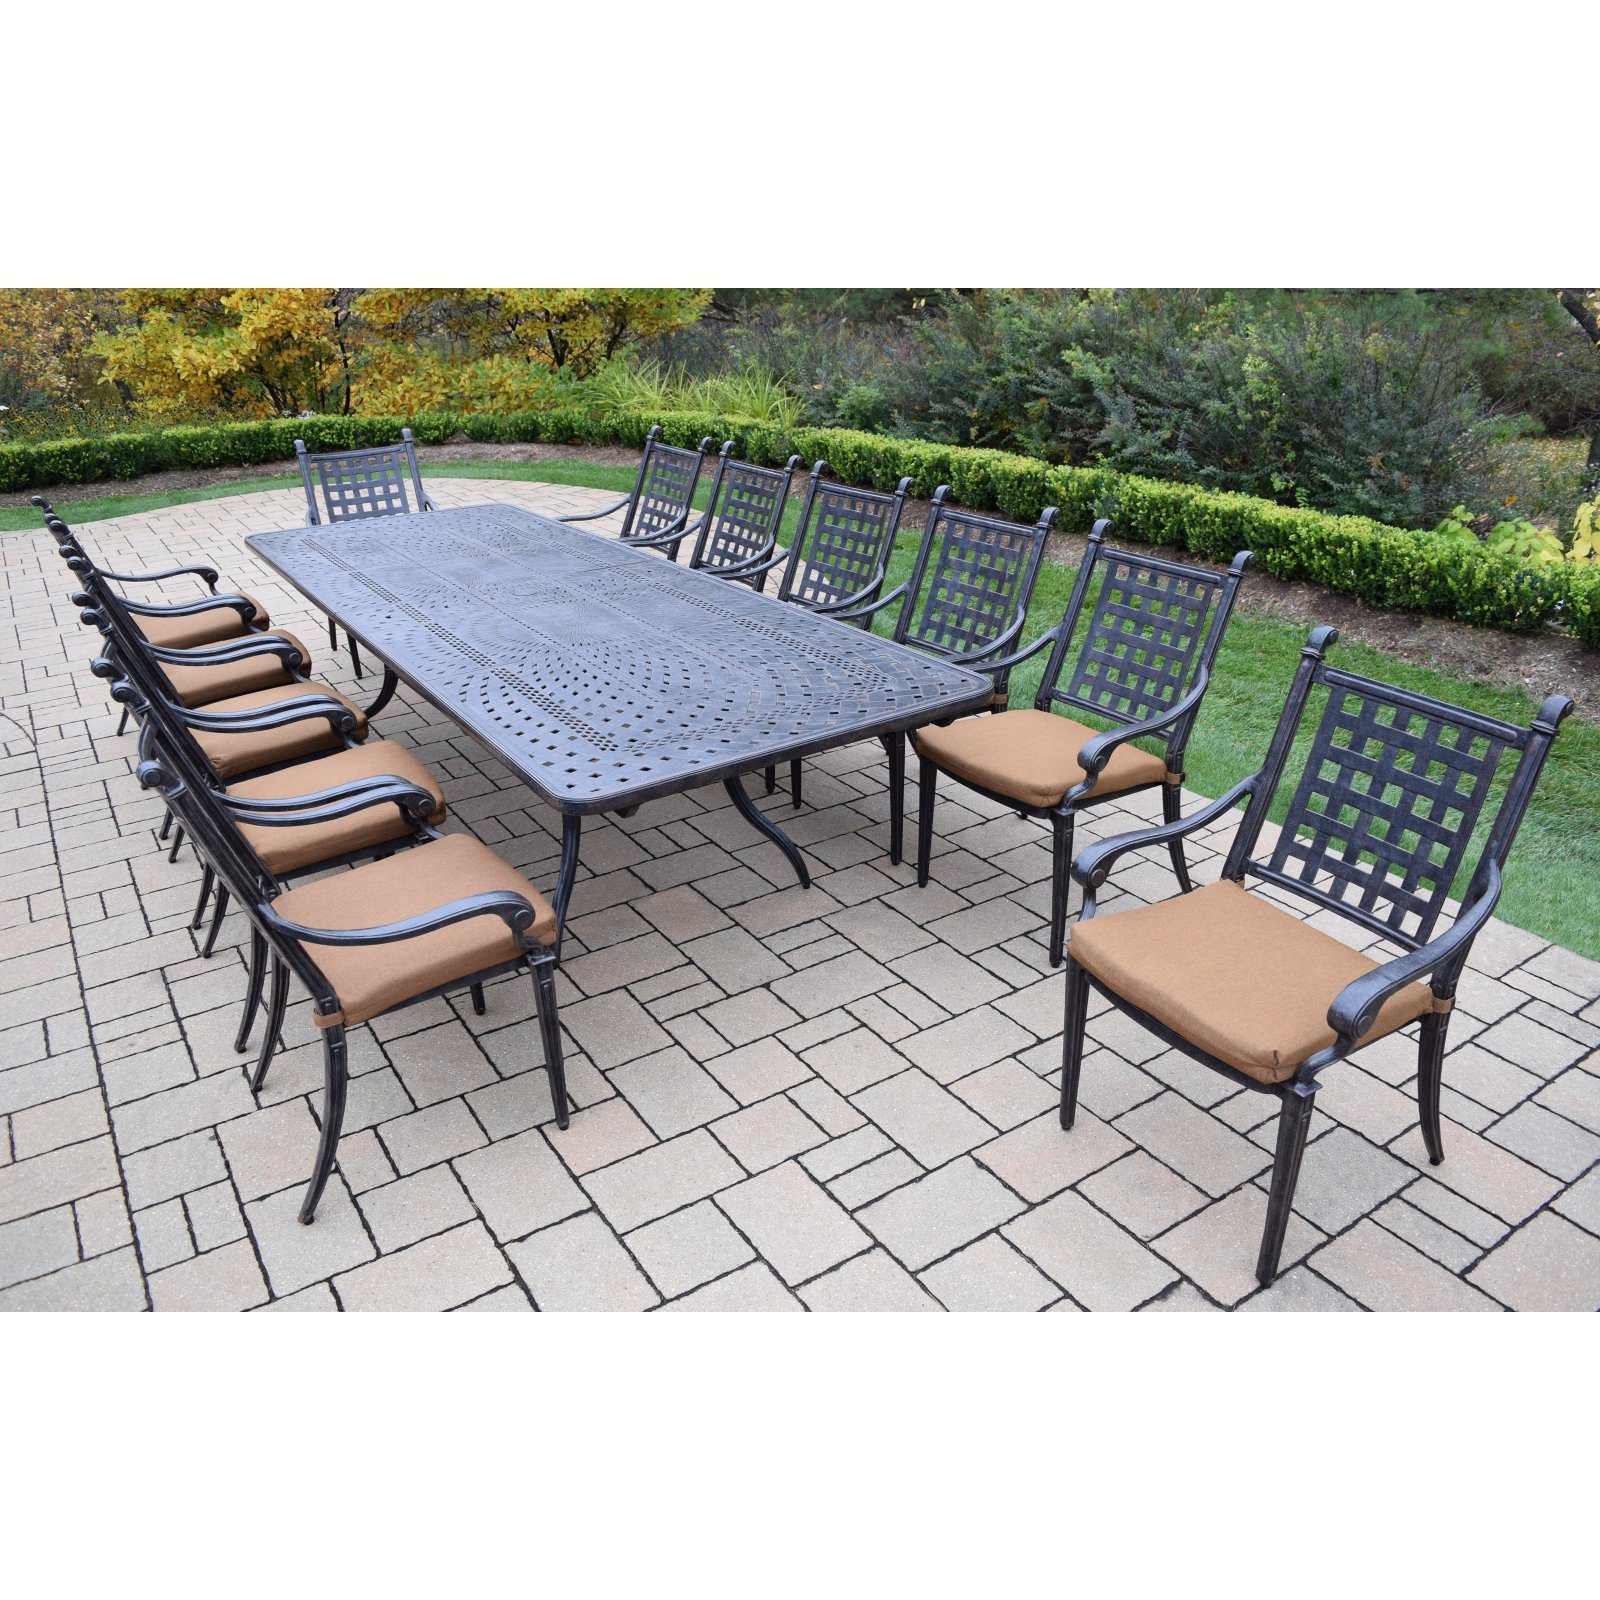 Oakland Living Belmont 13 Piece Extendable Patio Dining Room Set with Stackable Chairs by Oakland Living Corporation